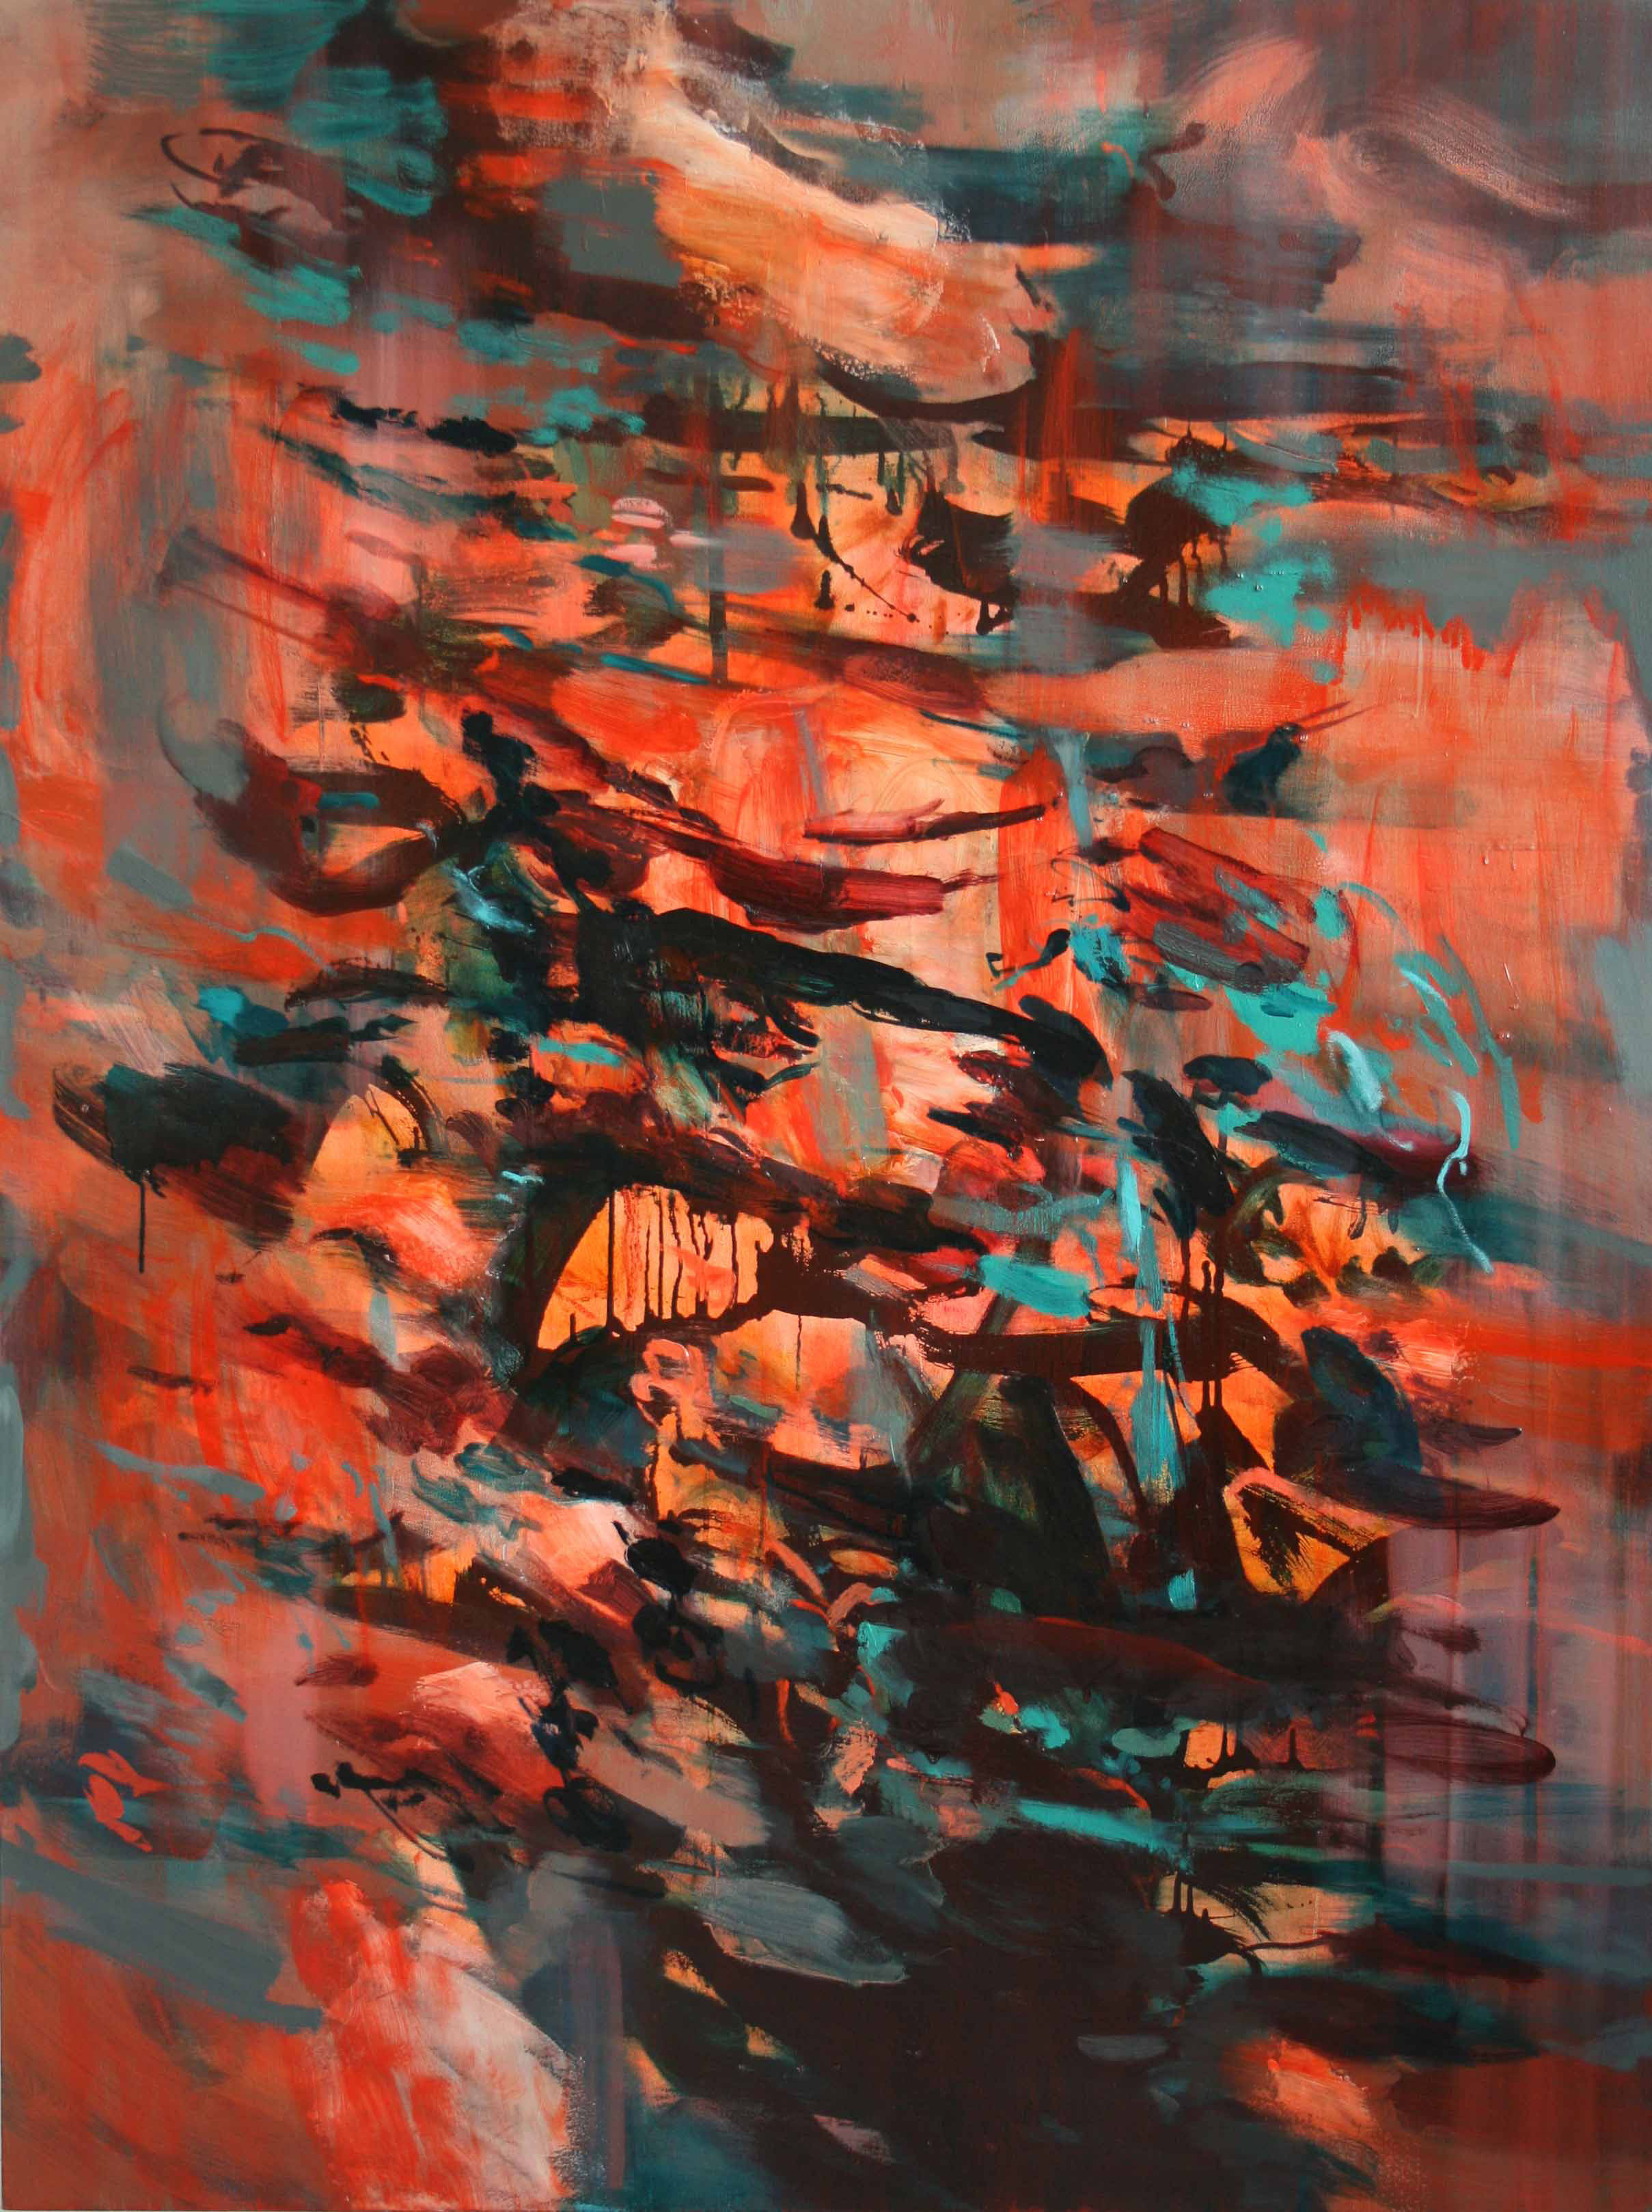 Untitled #4  2011  oil on canvas  160 x 120 cm